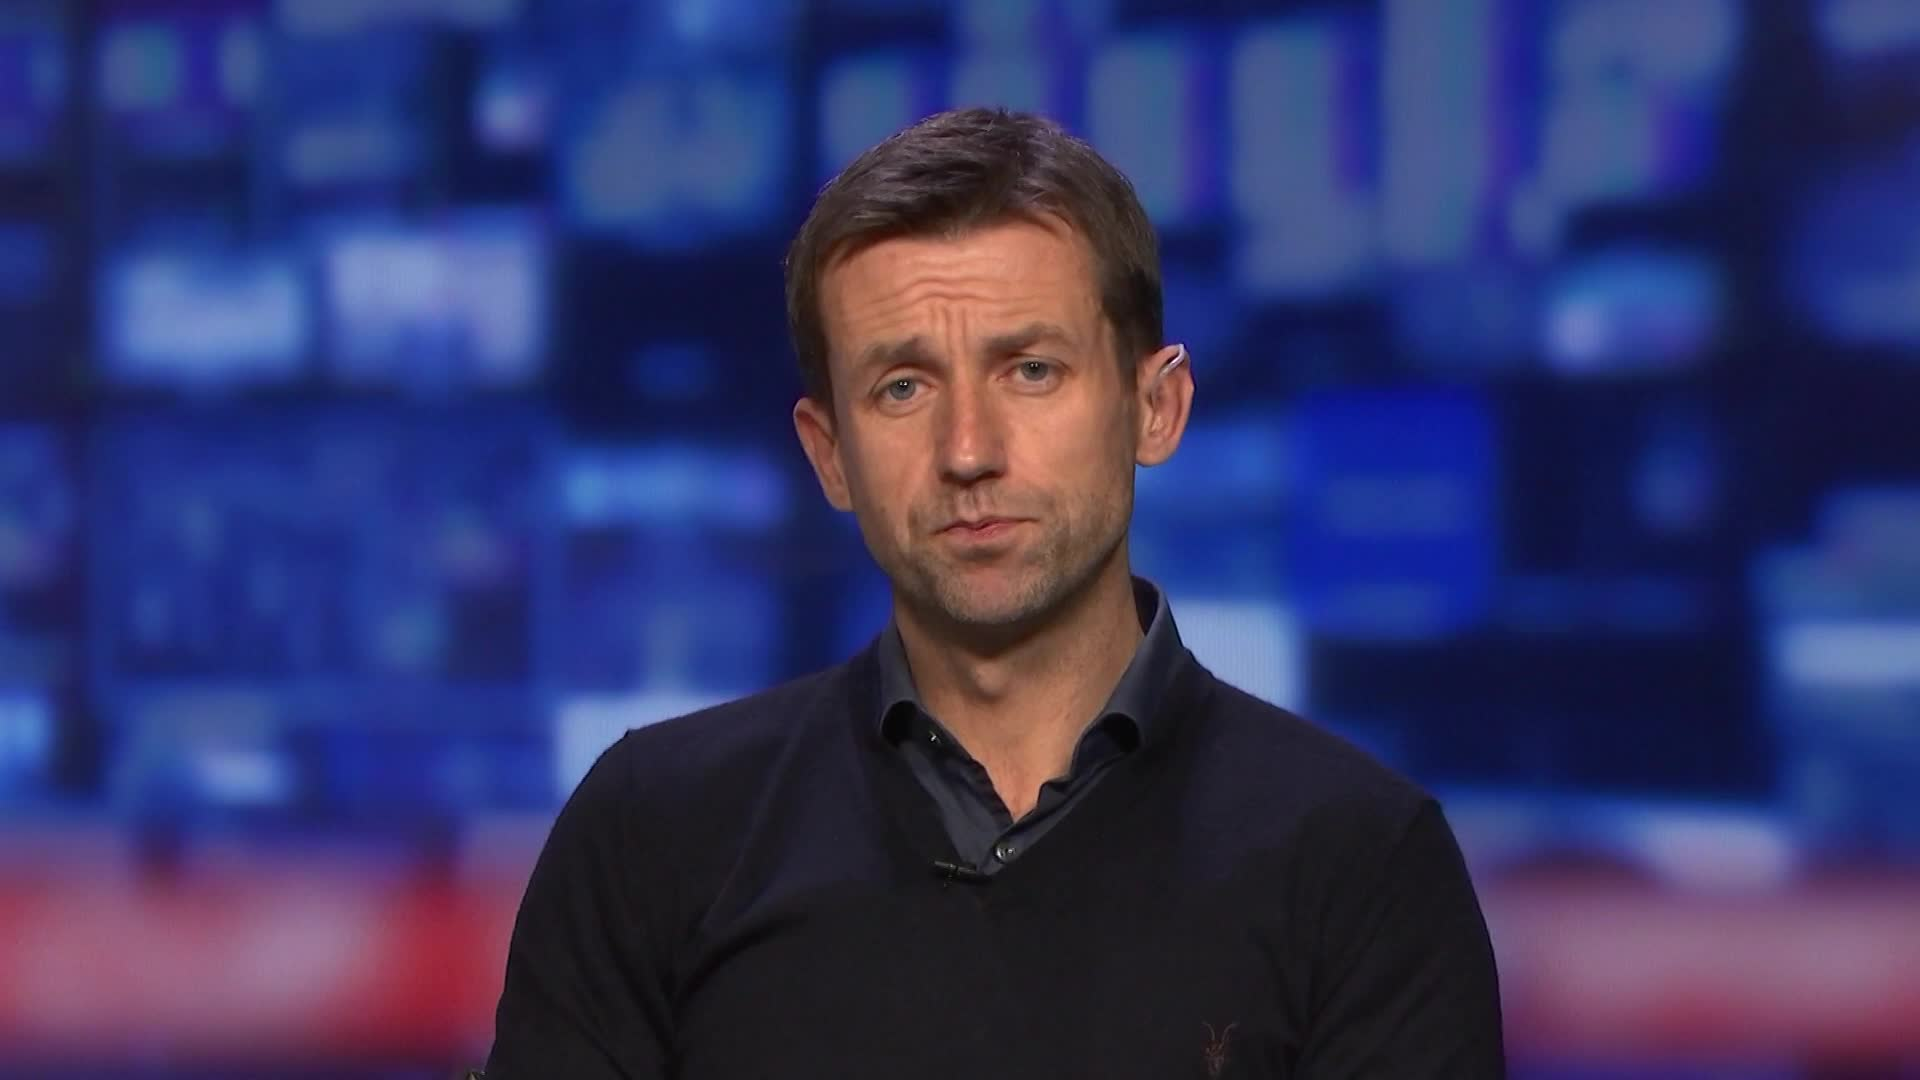 Neil McCann: Delighted To Be Here